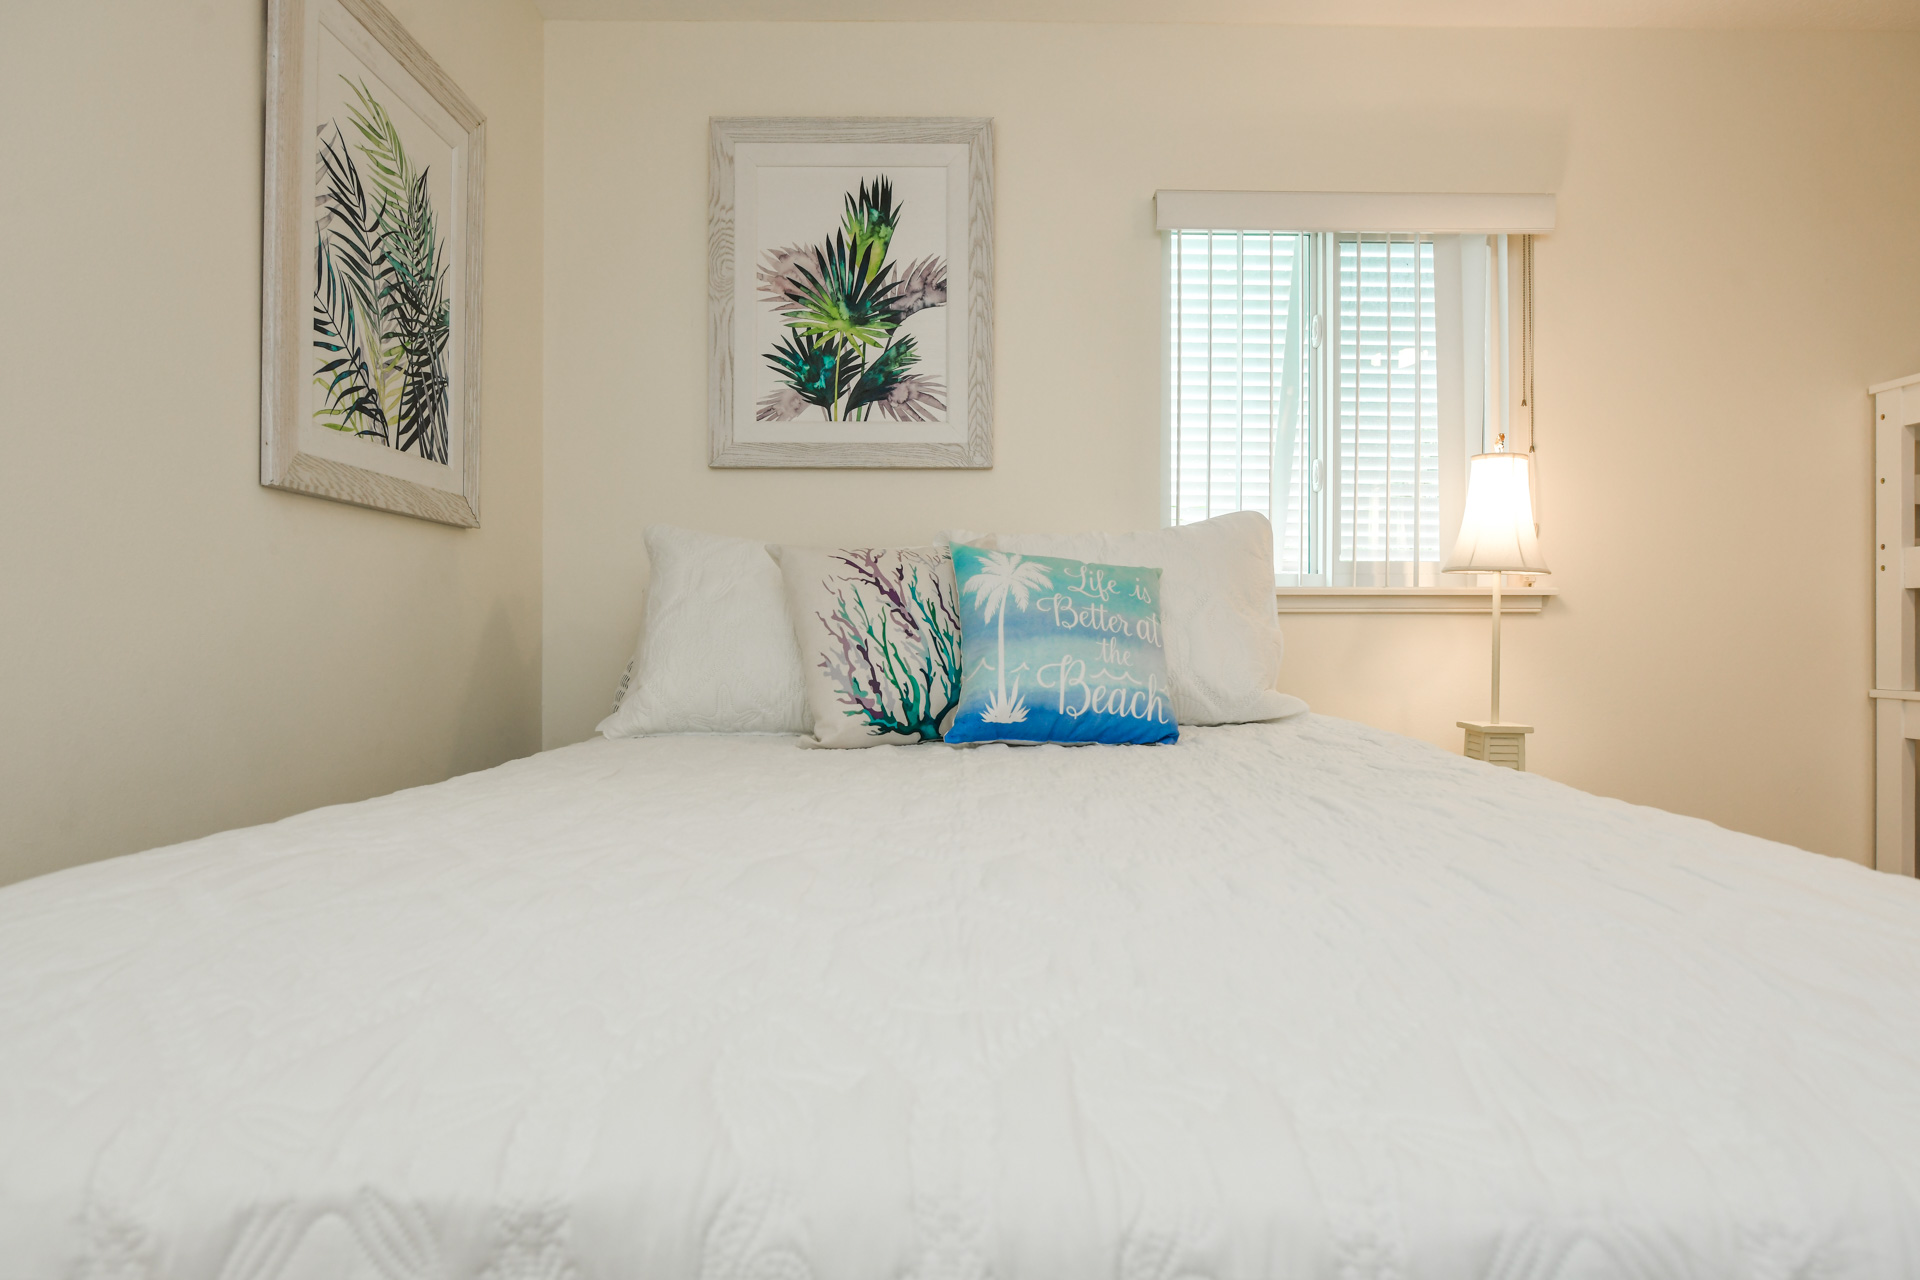 Curl up in a queen size bed after a long day